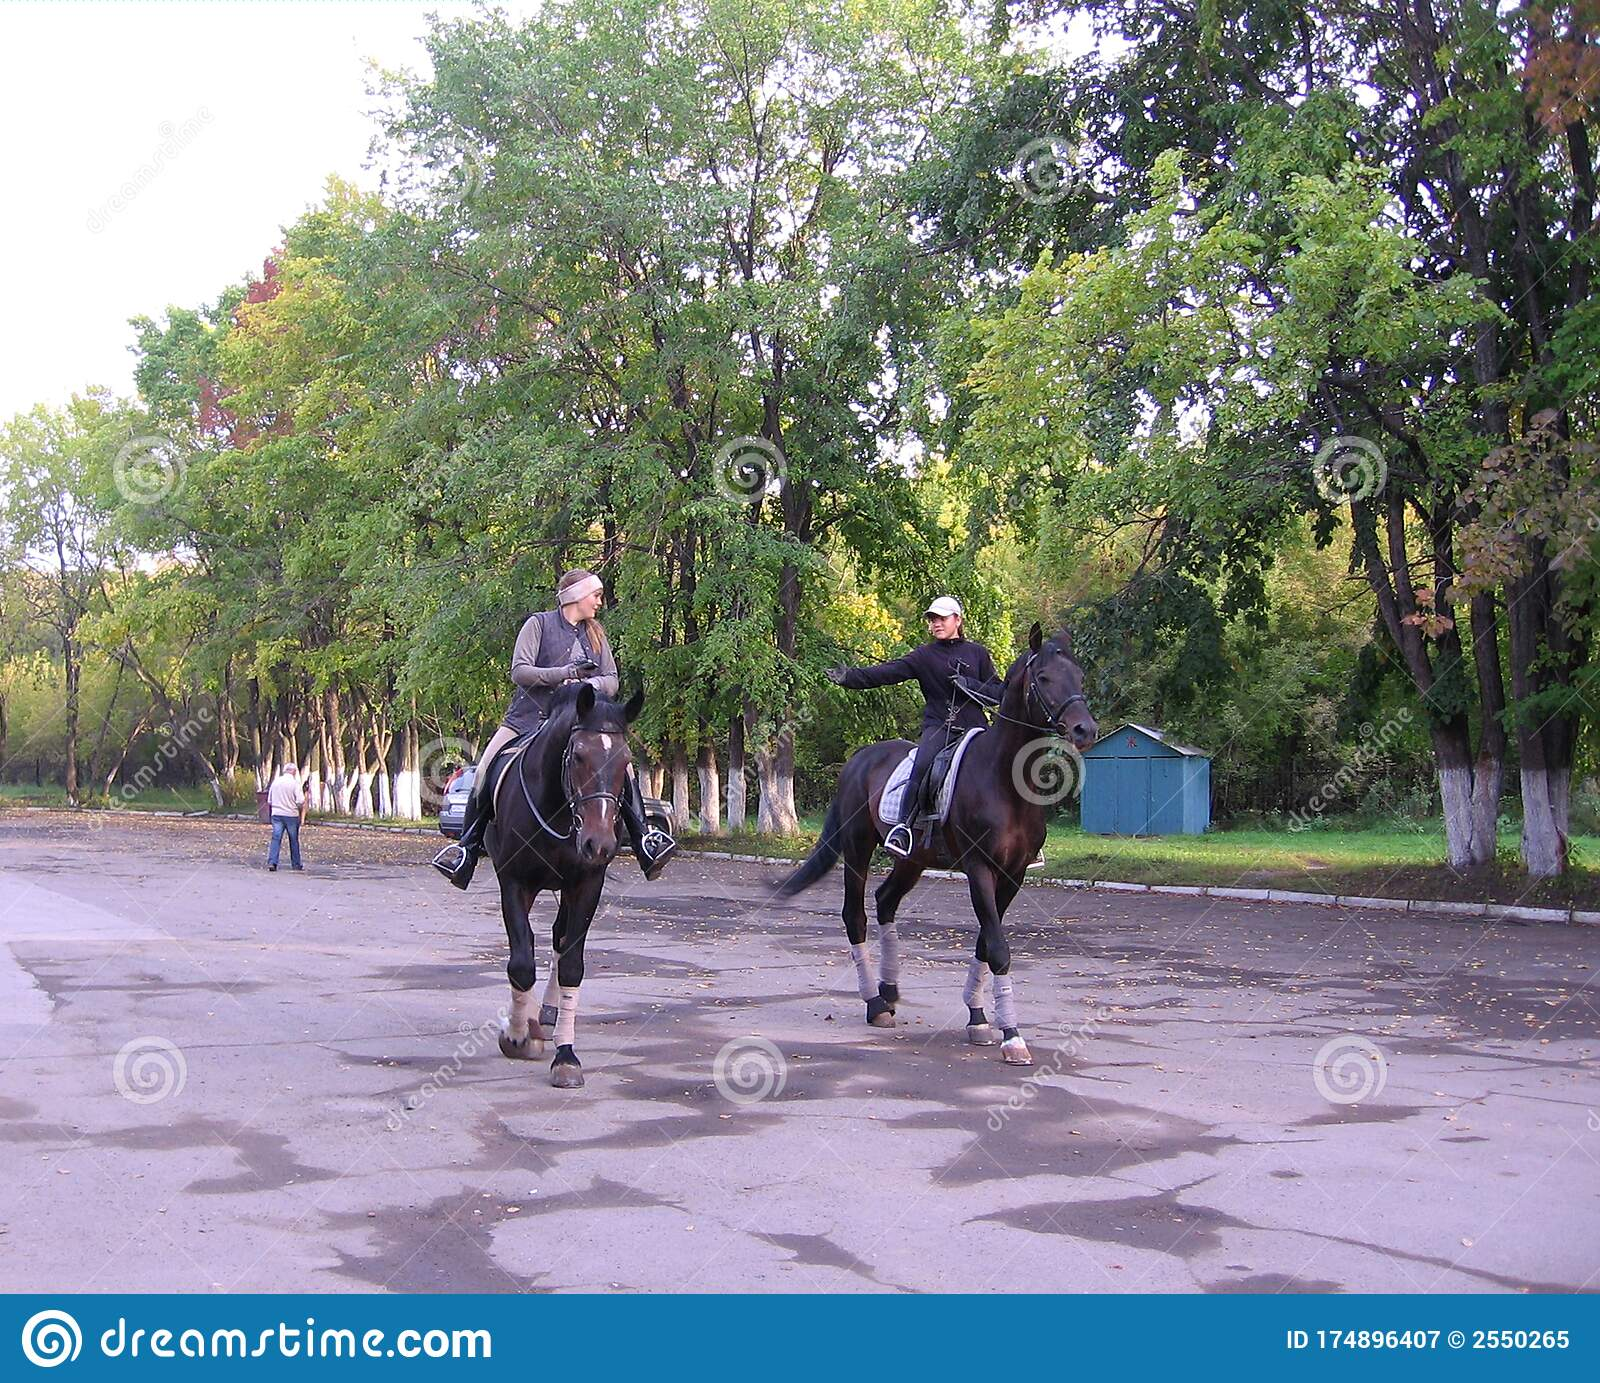 Two Girls Riding Horses In The Park In The Autumn Editorial Photography Image Of Park Summer 174896407